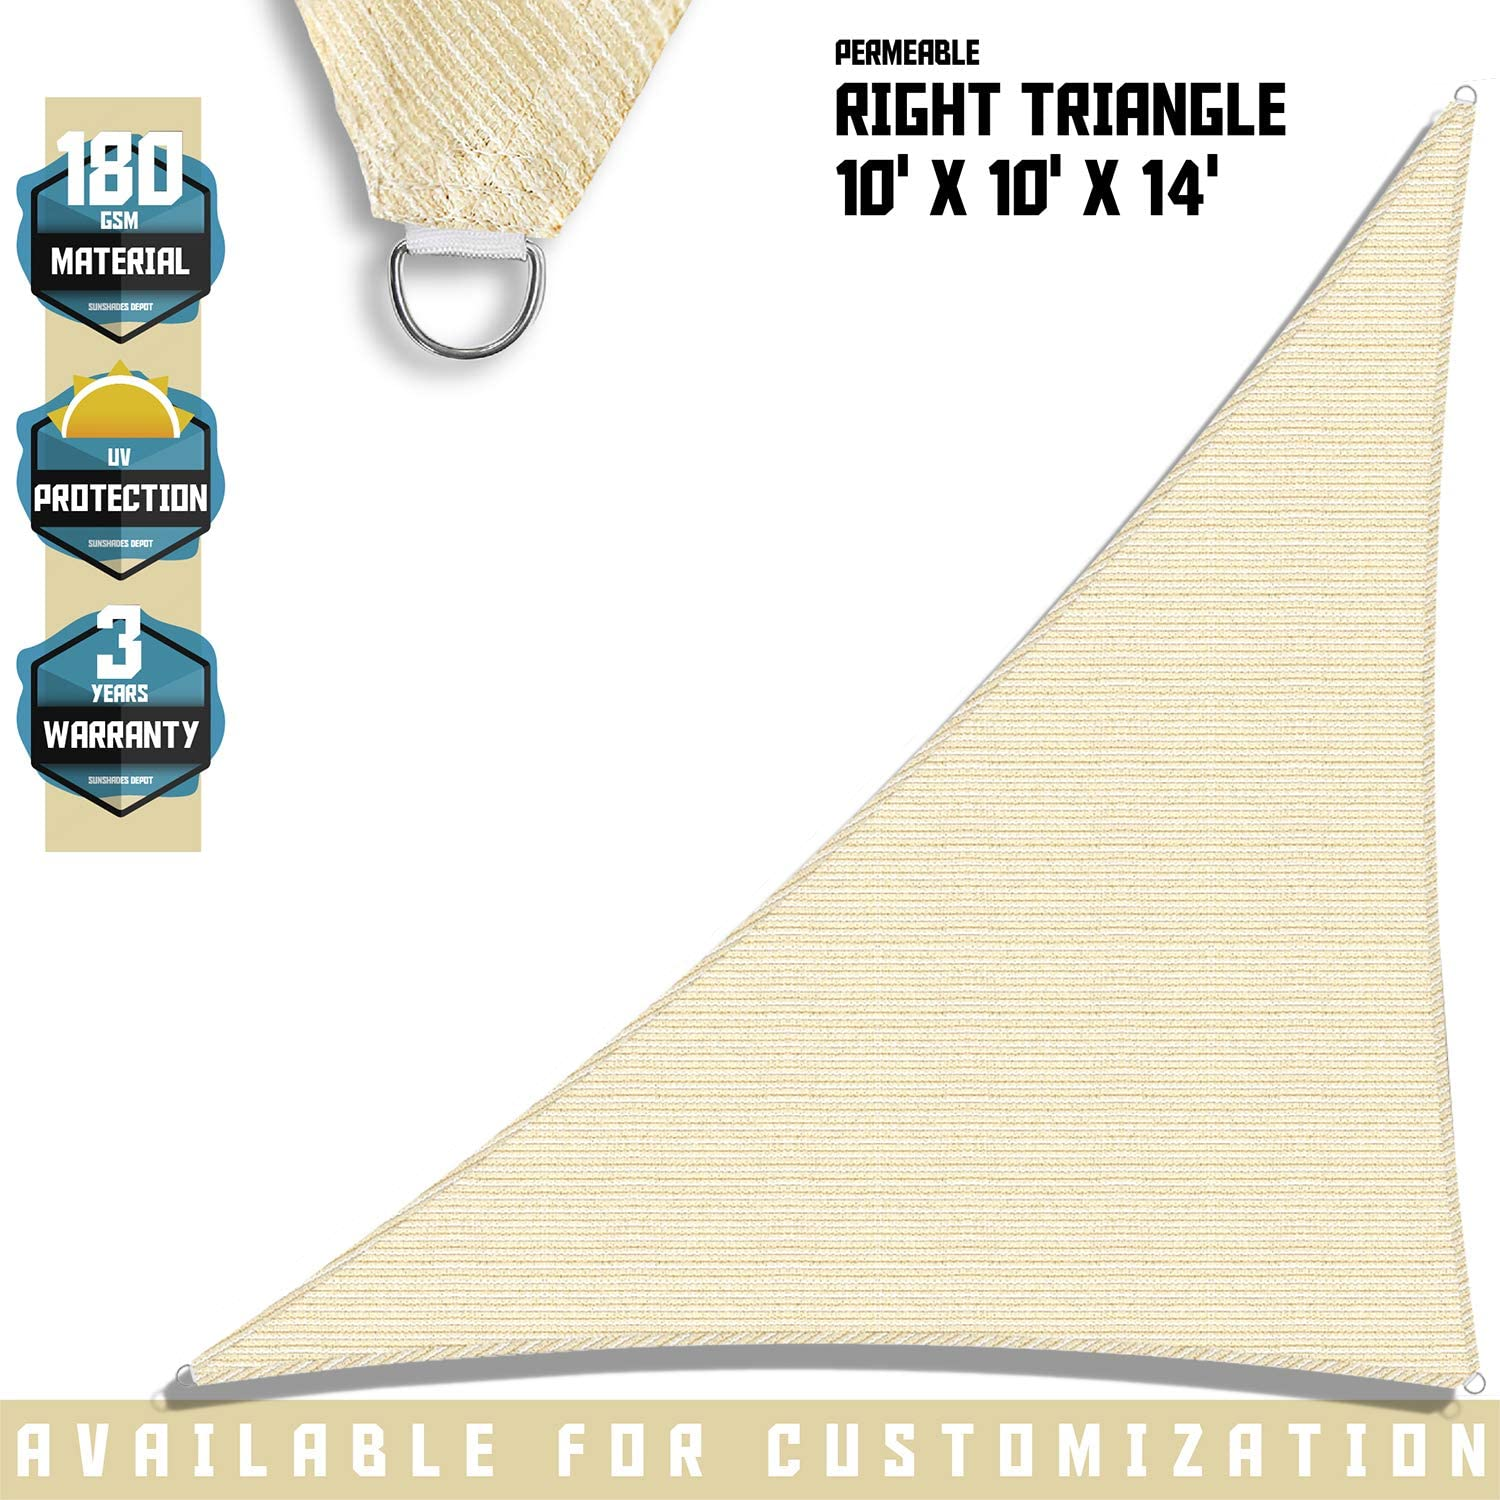 TANG Sunshades Depot Sun Shade Sail Right Triangle Permeable Canopy Custom Commercial Standard Beige 10 x10 x14